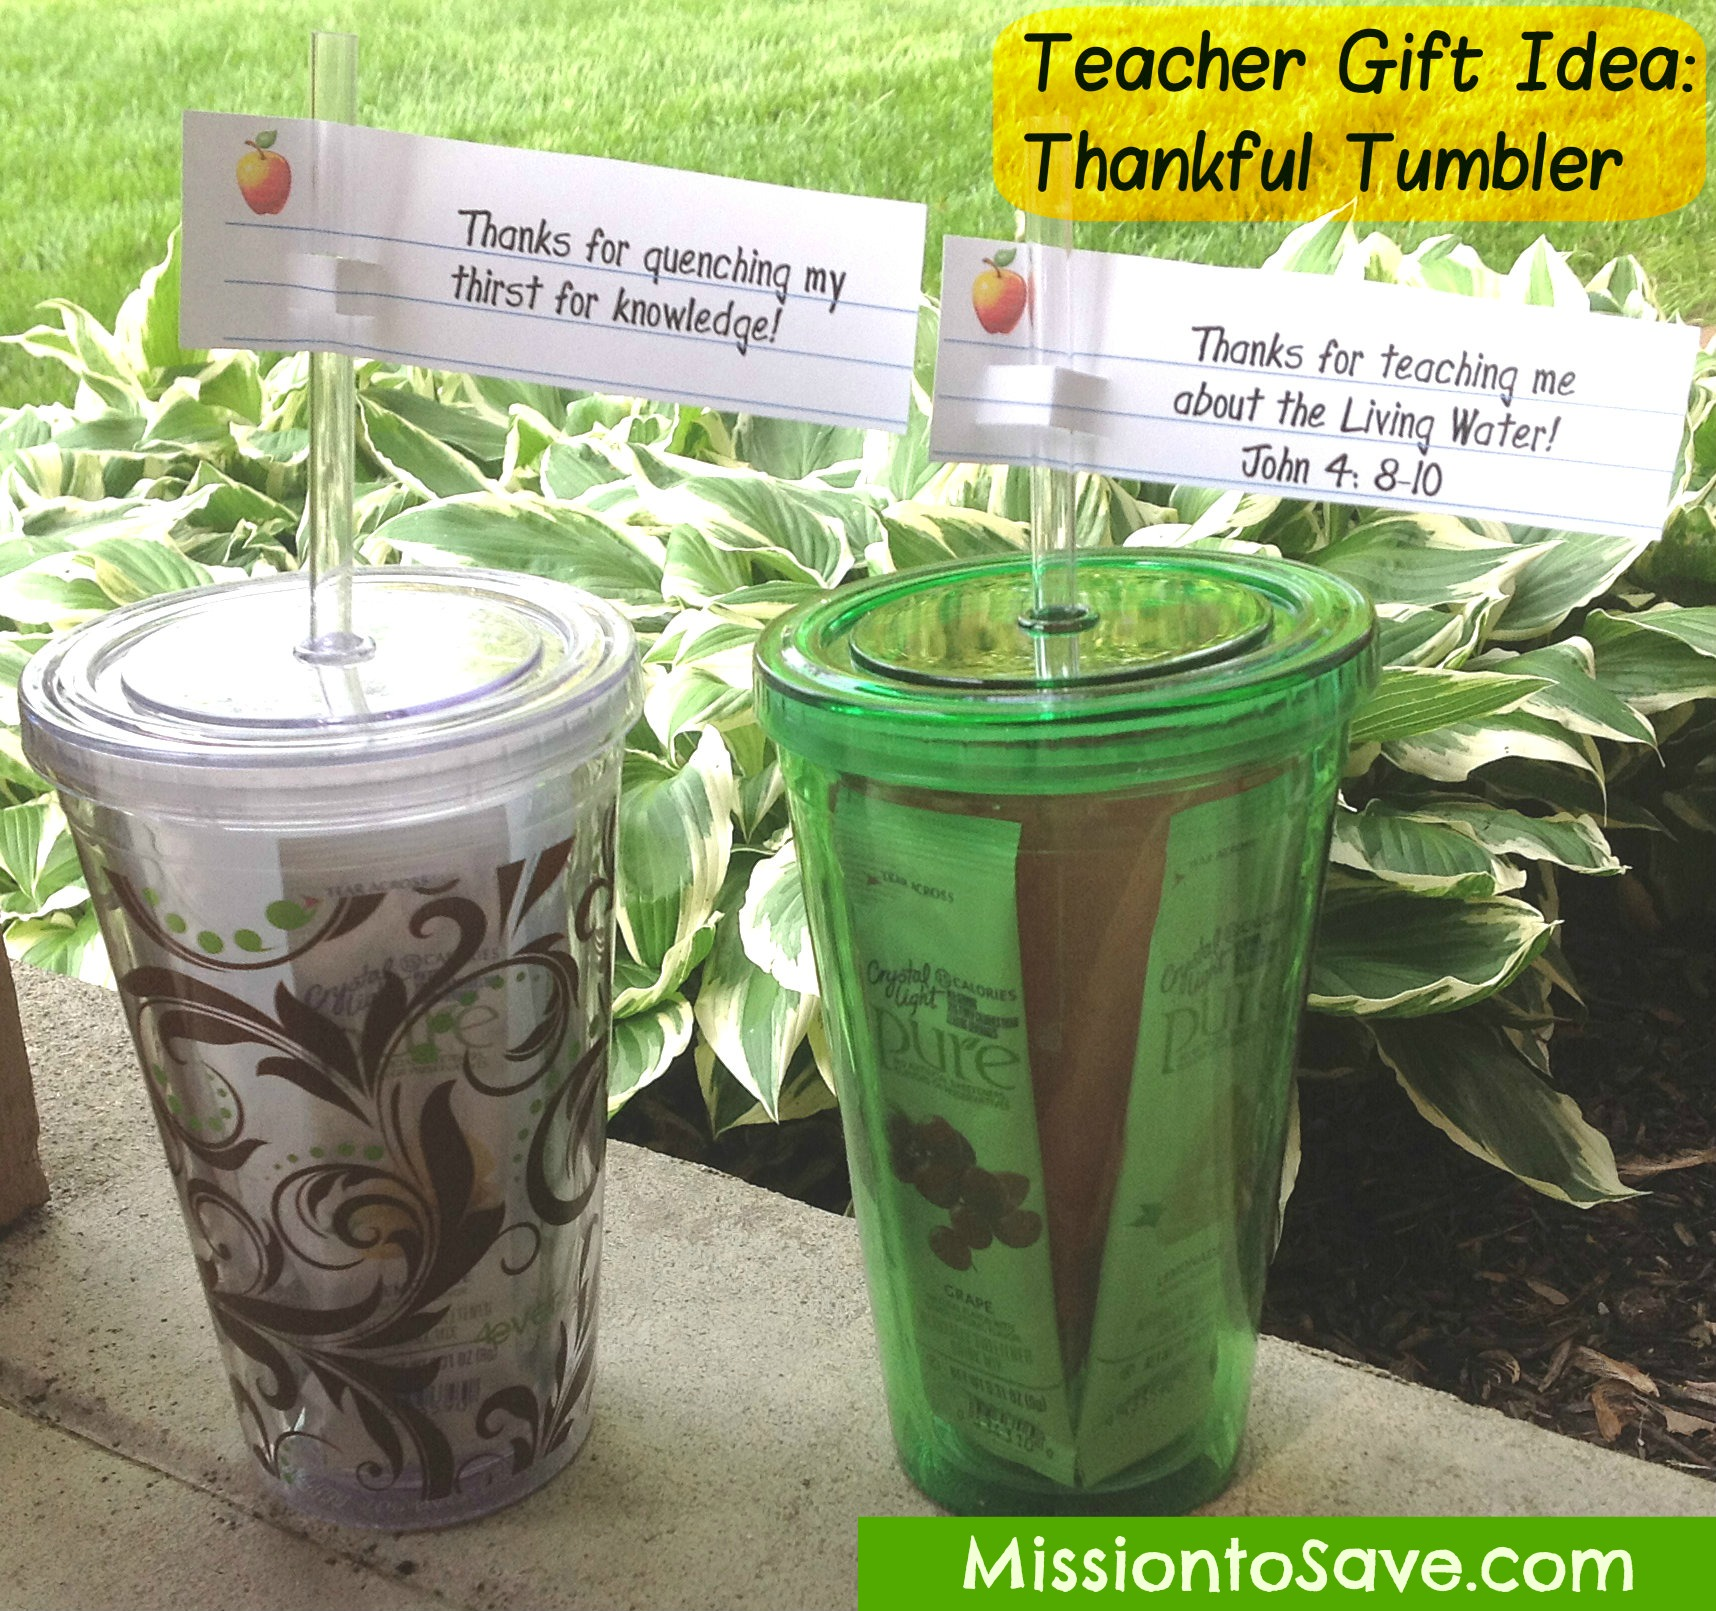 Teacher gifts thankful tumbler